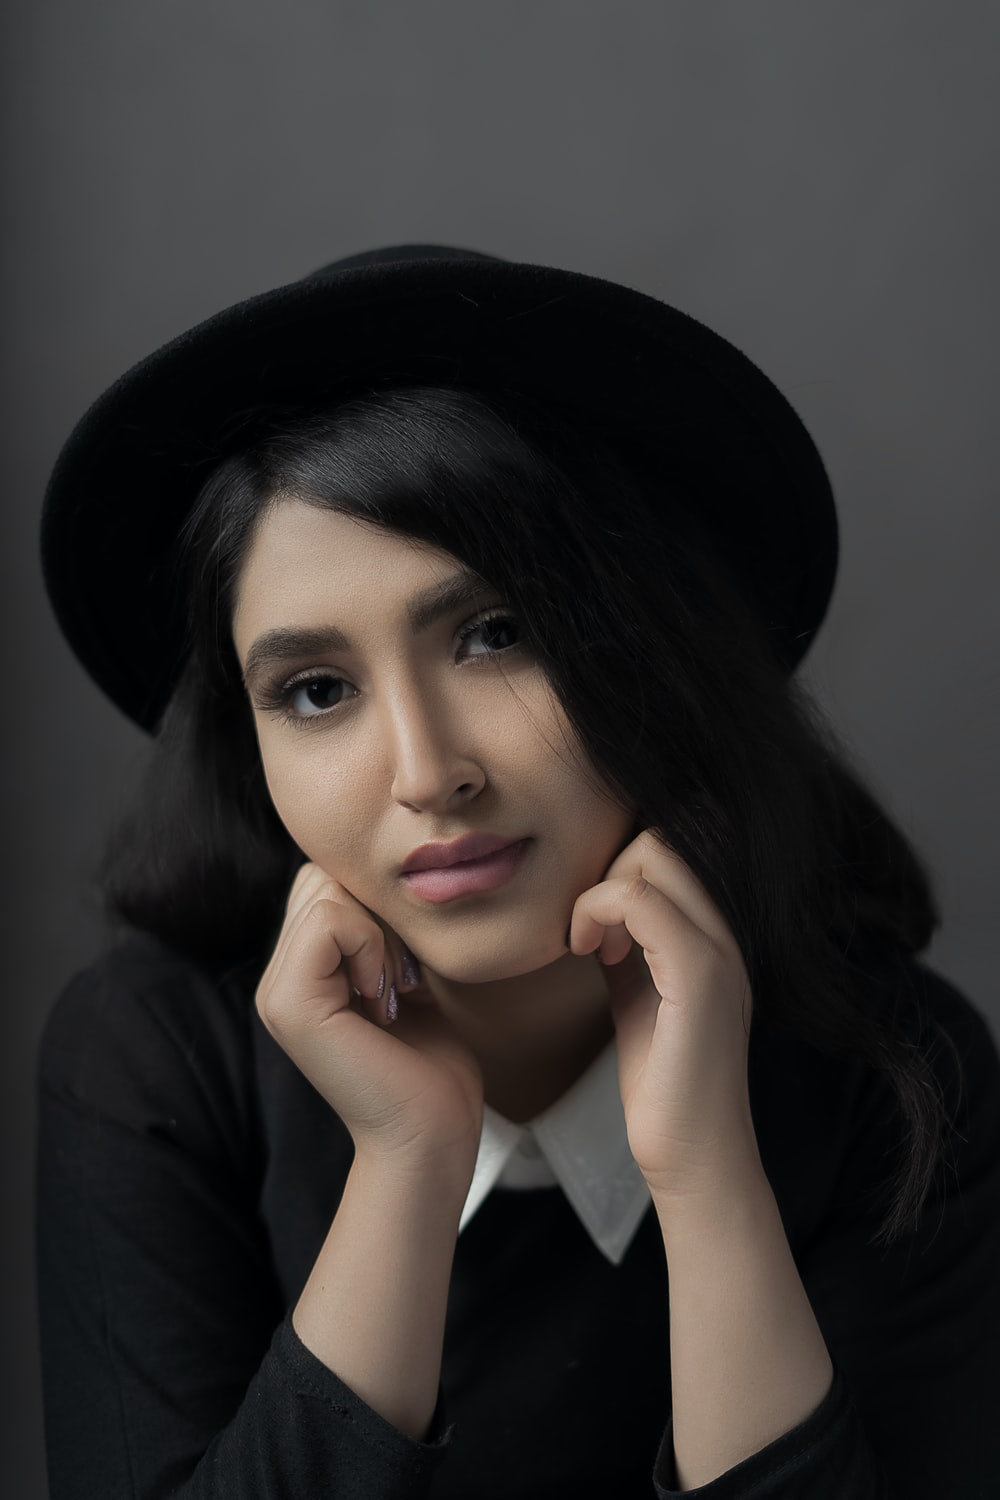 woman in black and white collared top and black hat